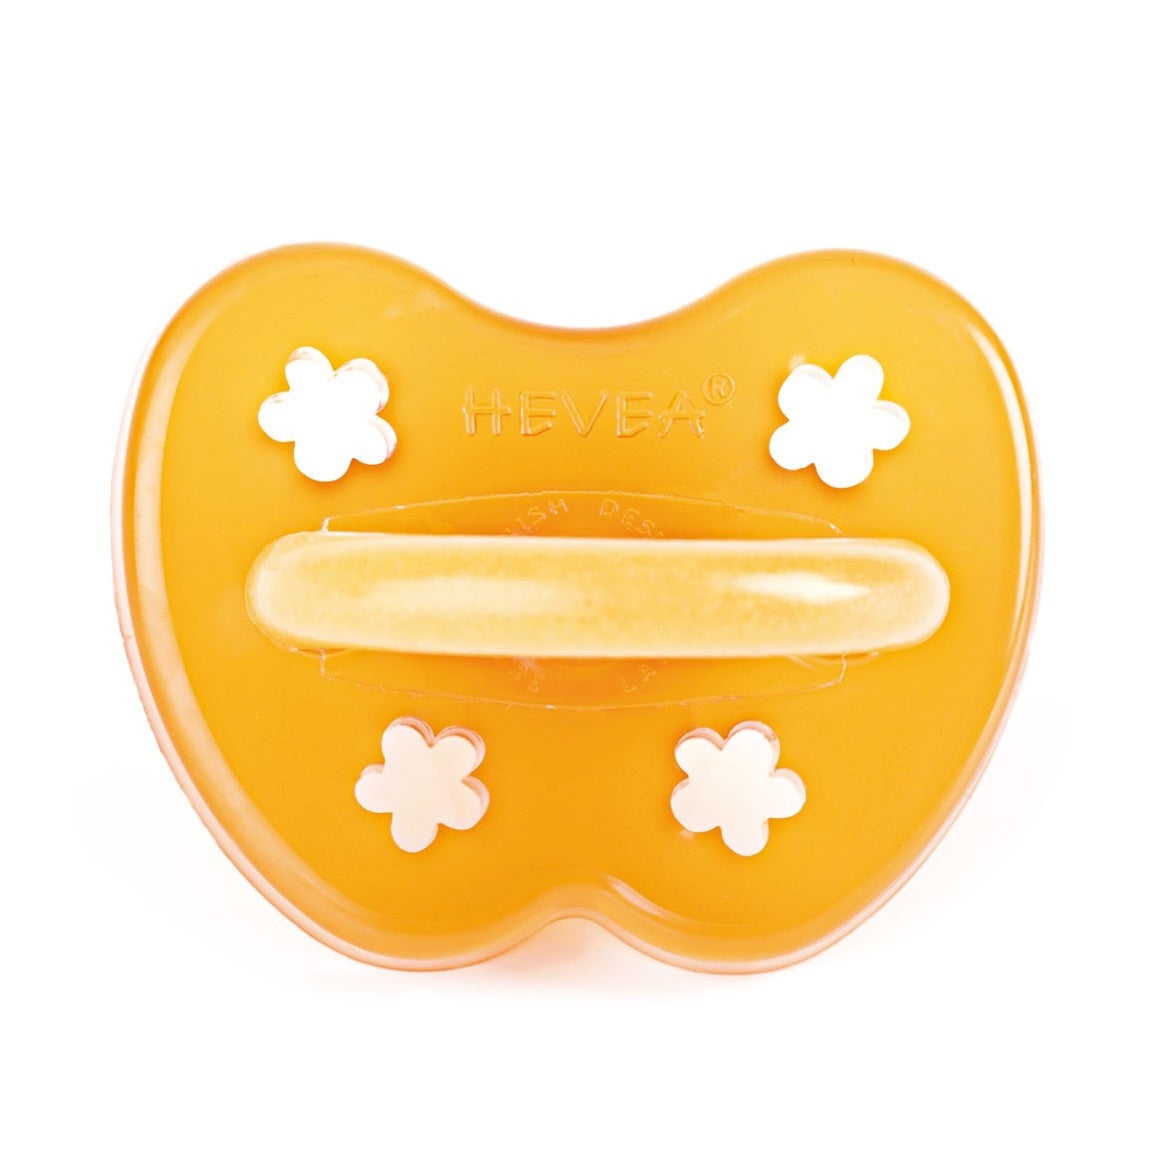 Hevea natural rubber pacifier with flower shape cut outs